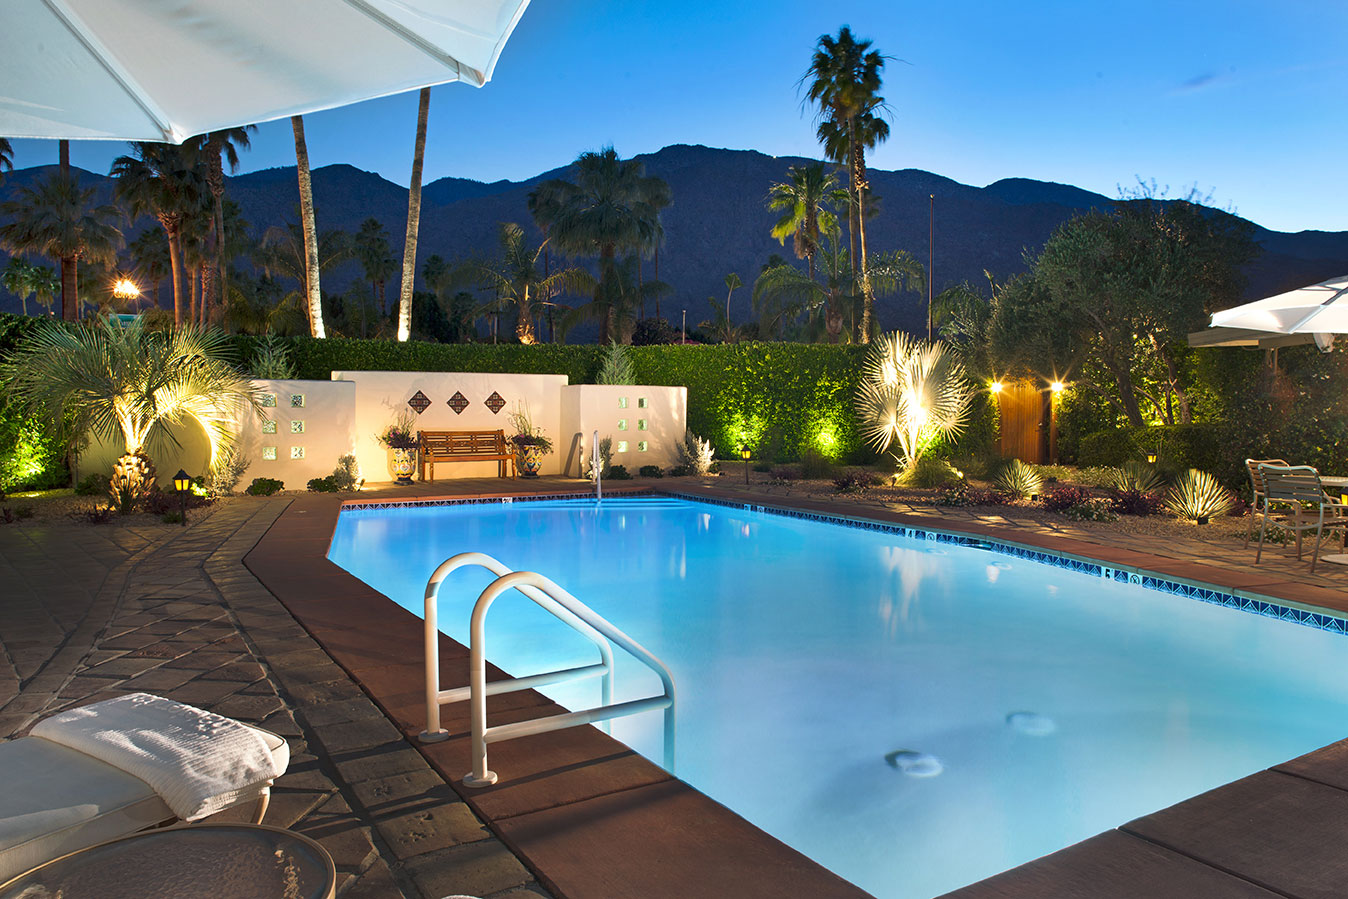 Sunset pool view at The Hacienda in Gay Palm Springs